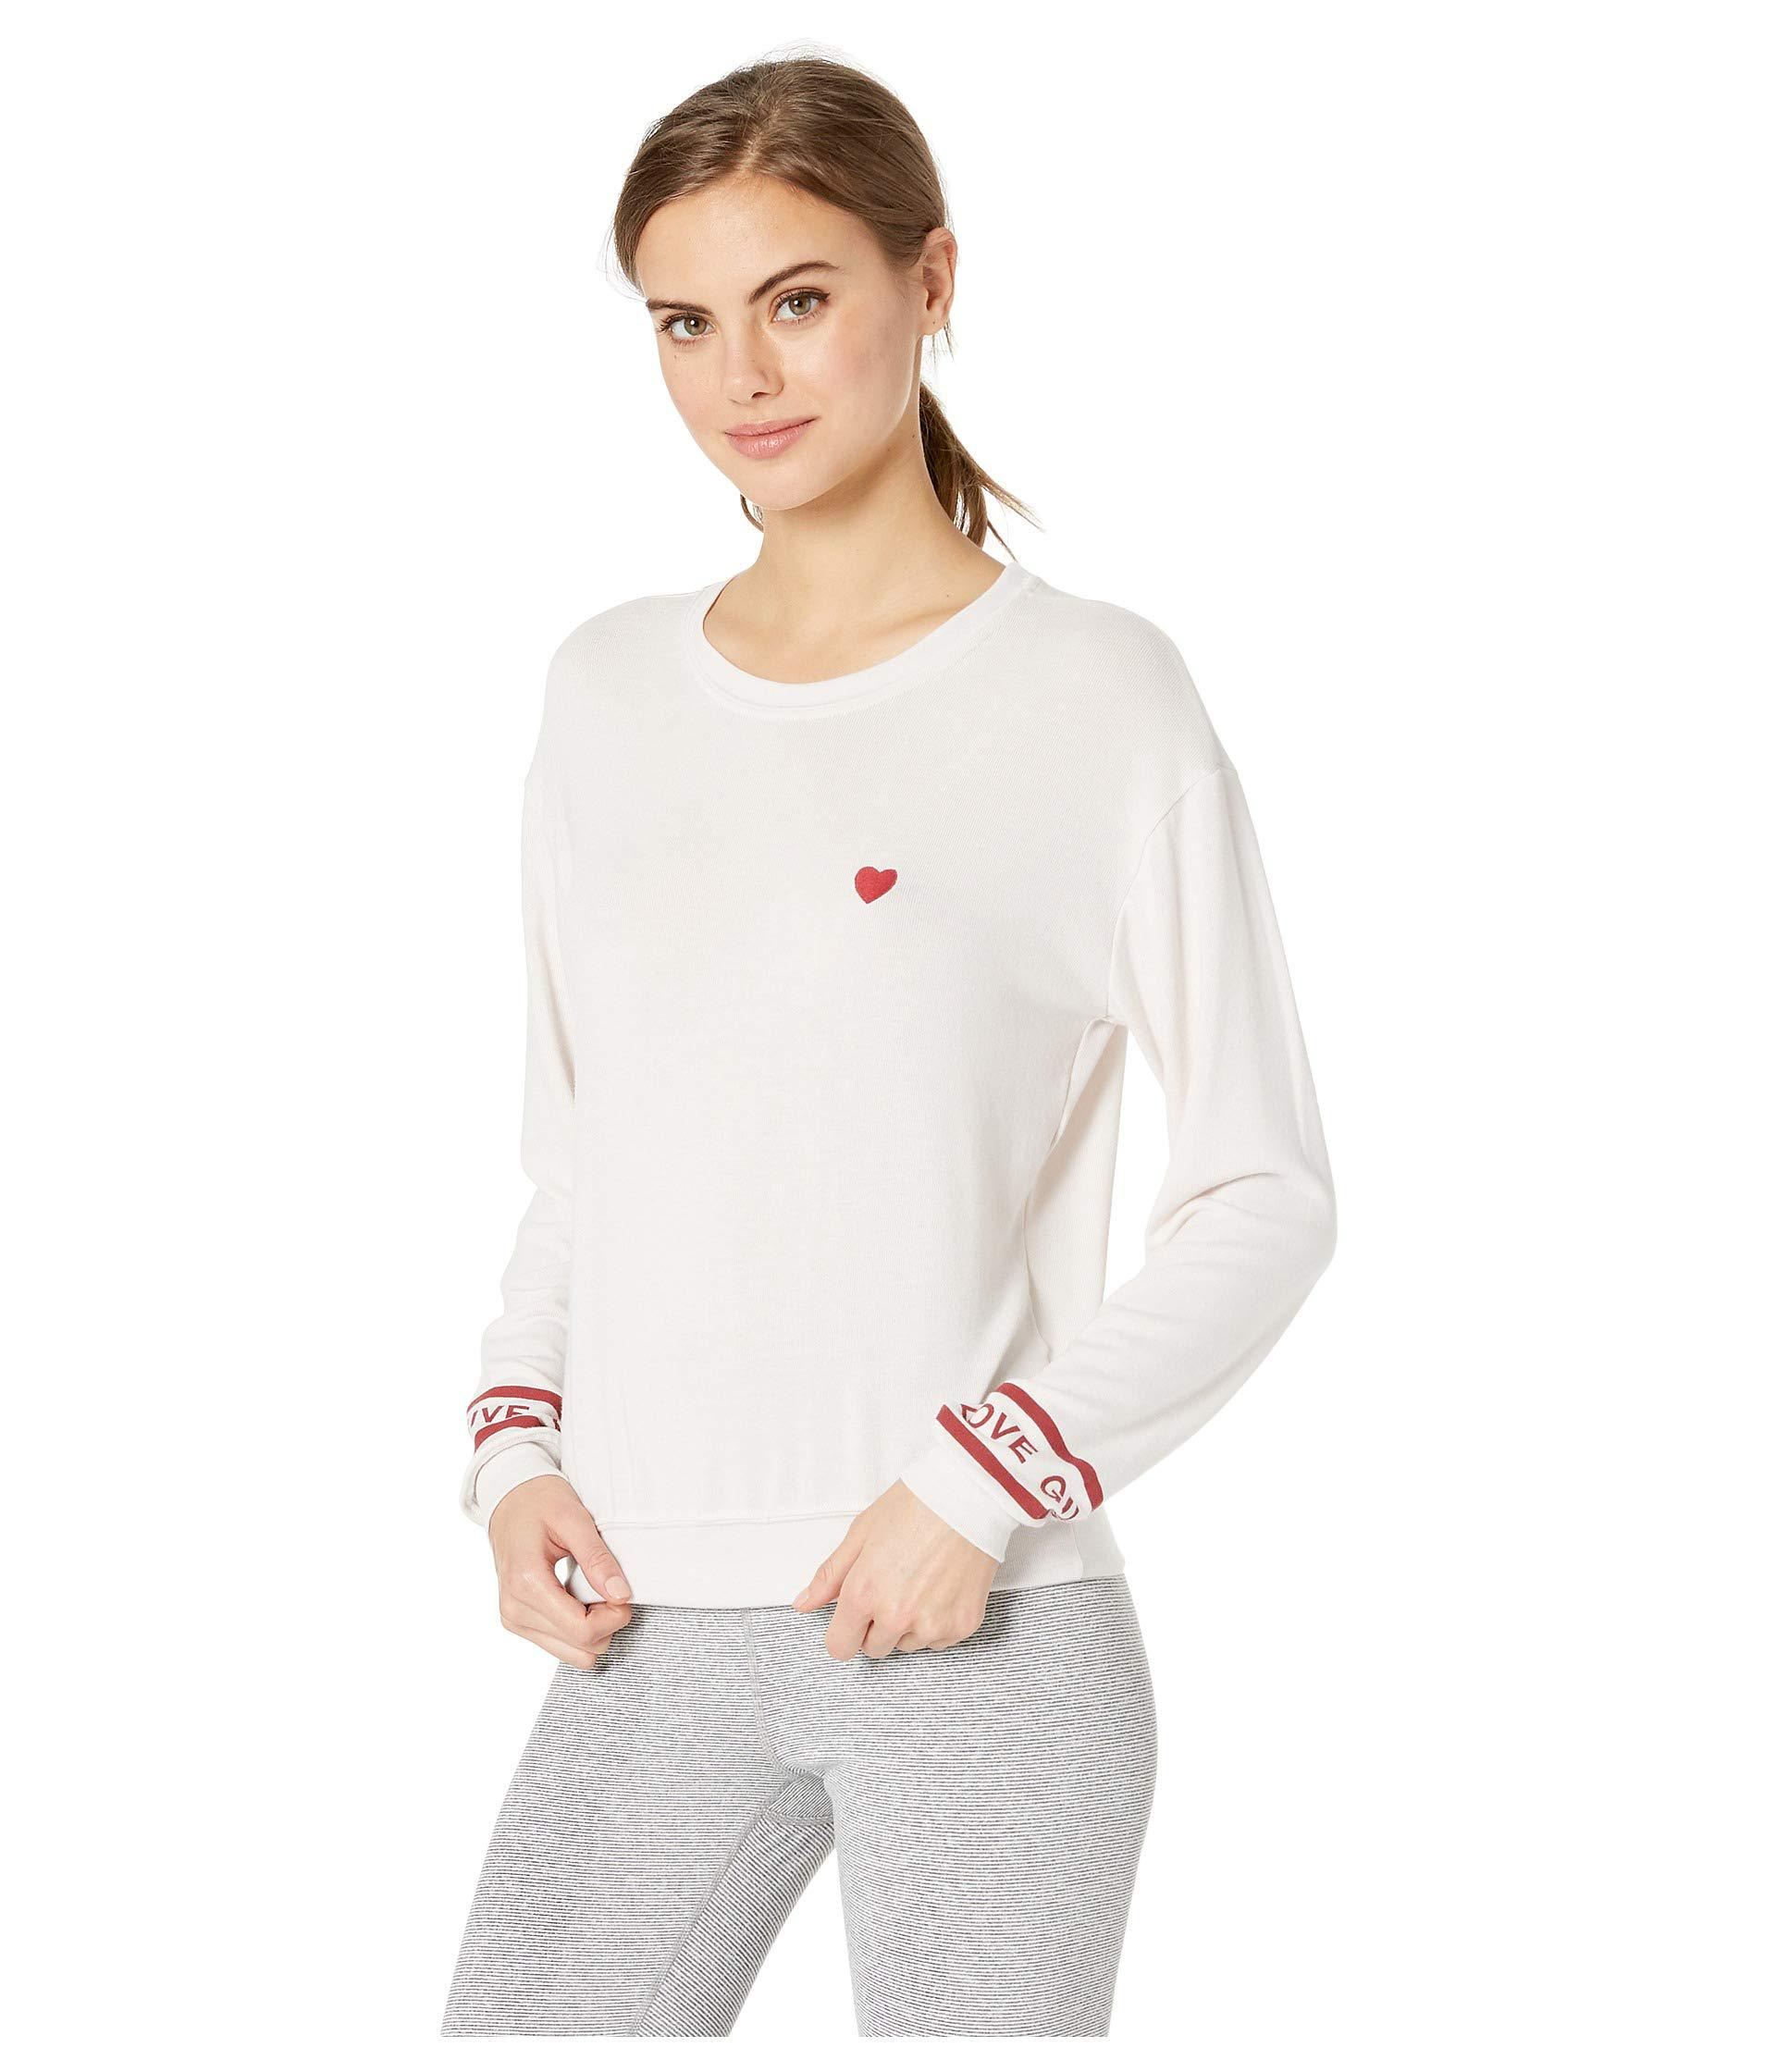 Lyst - Spiritual Gangster Give Crew Neck Savasana (white Aura) Women s Long  Sleeve Pullover in White 26d4a6fe8